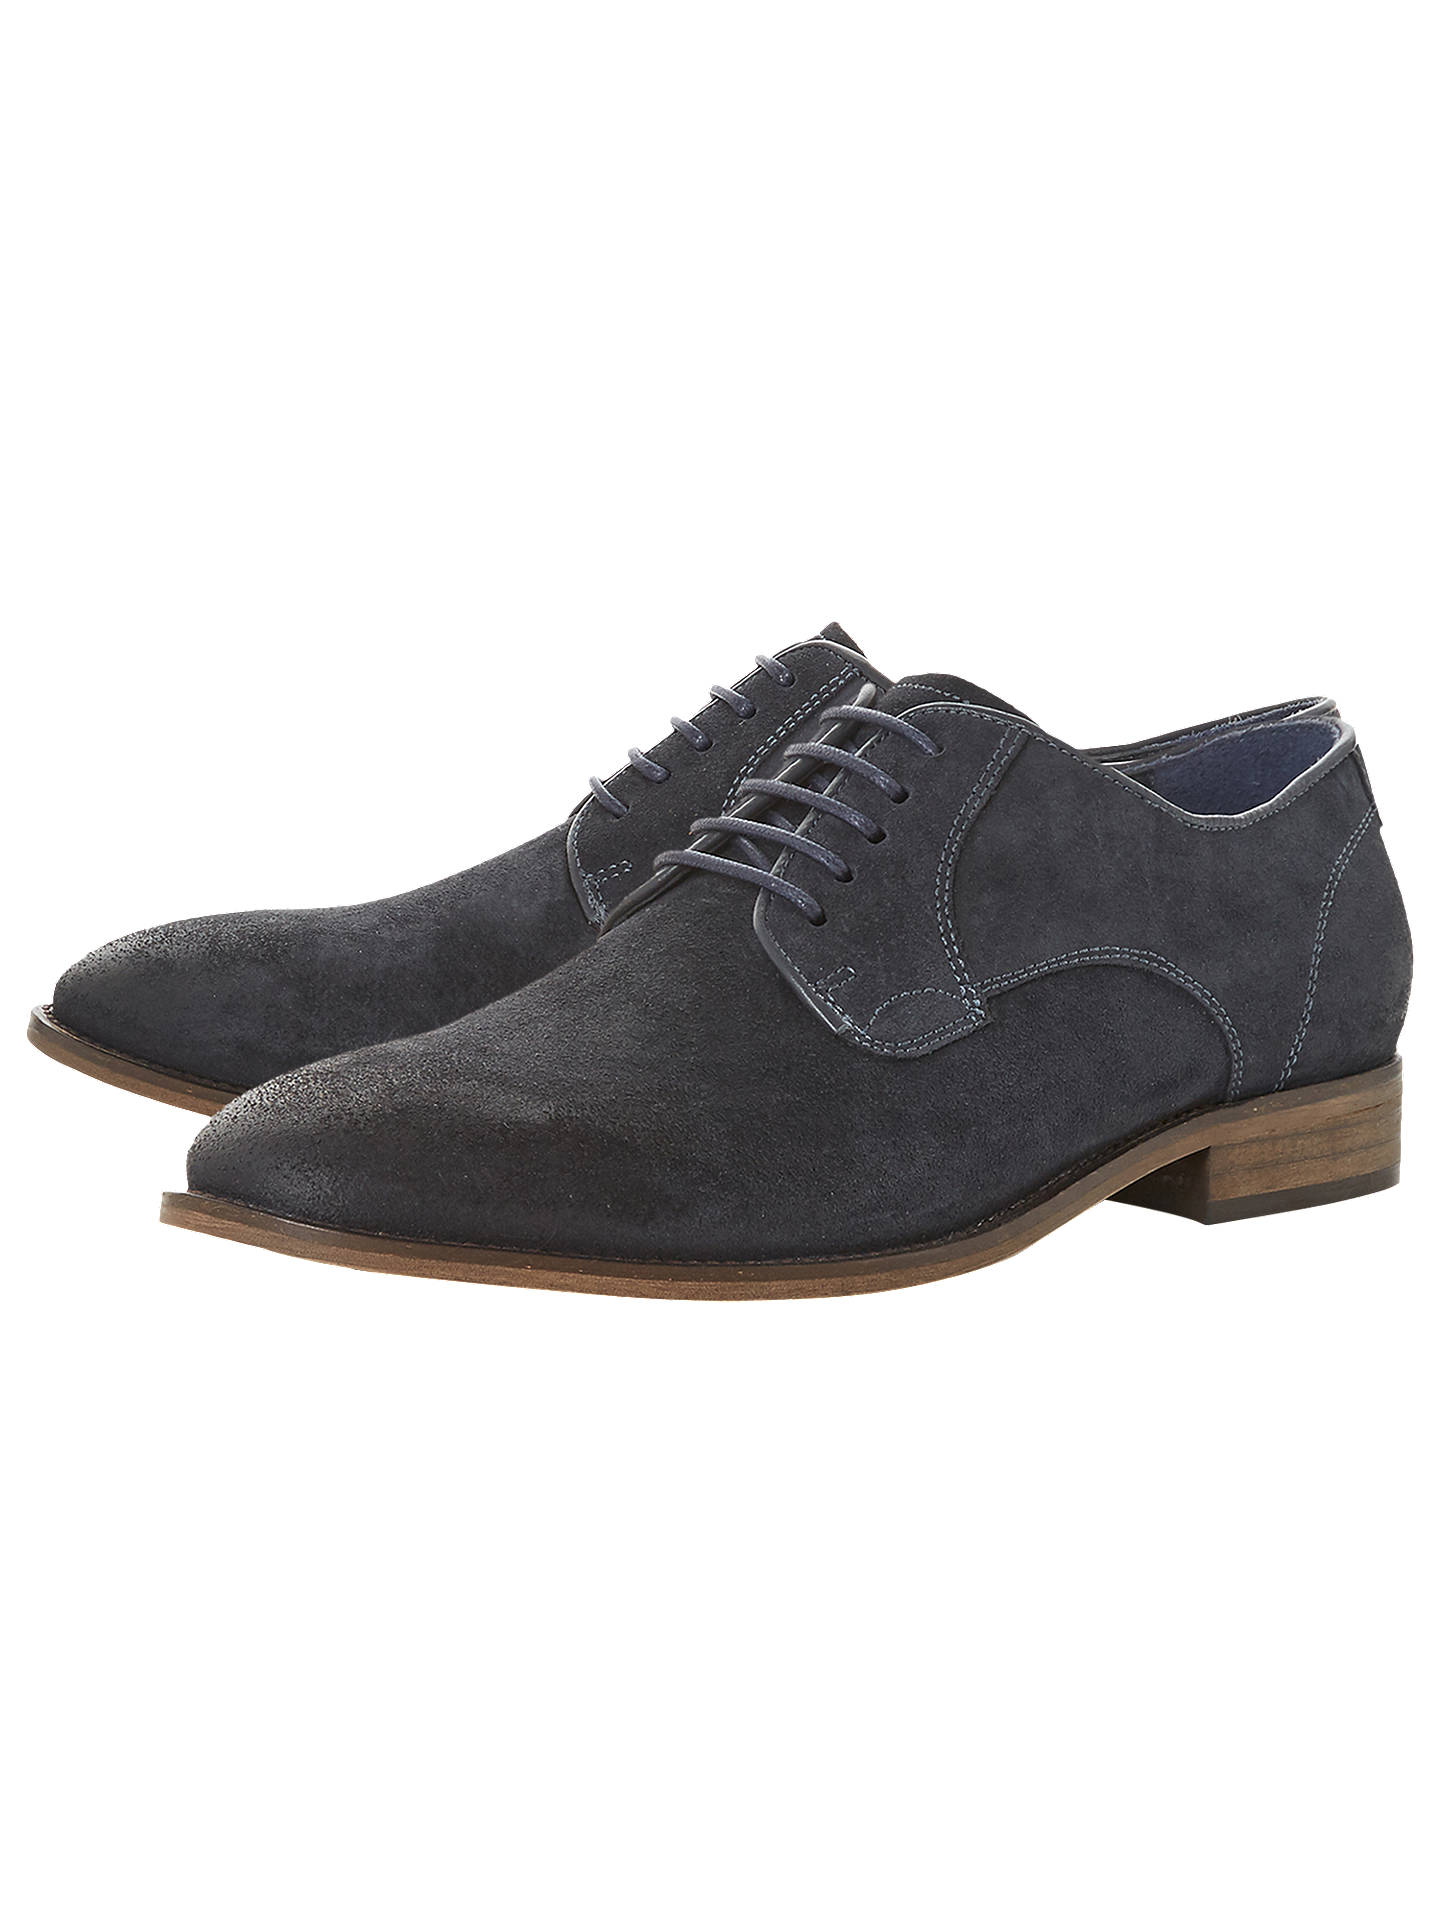 BuyBertie Percie Suede Gibson Shoes, Navy, 6 Online at johnlewis.com